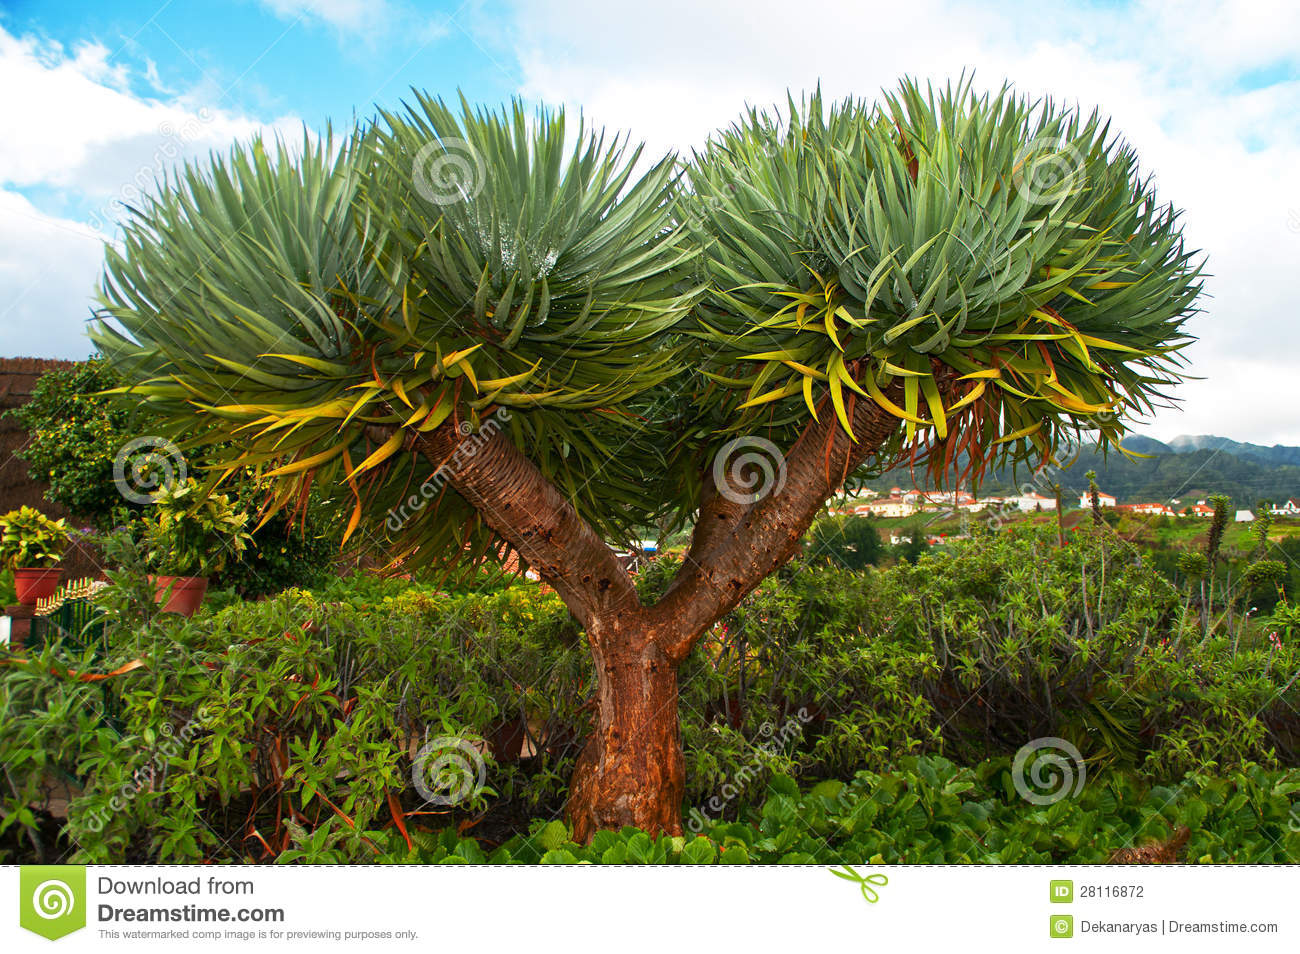 dracaena draco dragon tree royalty free stock photo. Black Bedroom Furniture Sets. Home Design Ideas